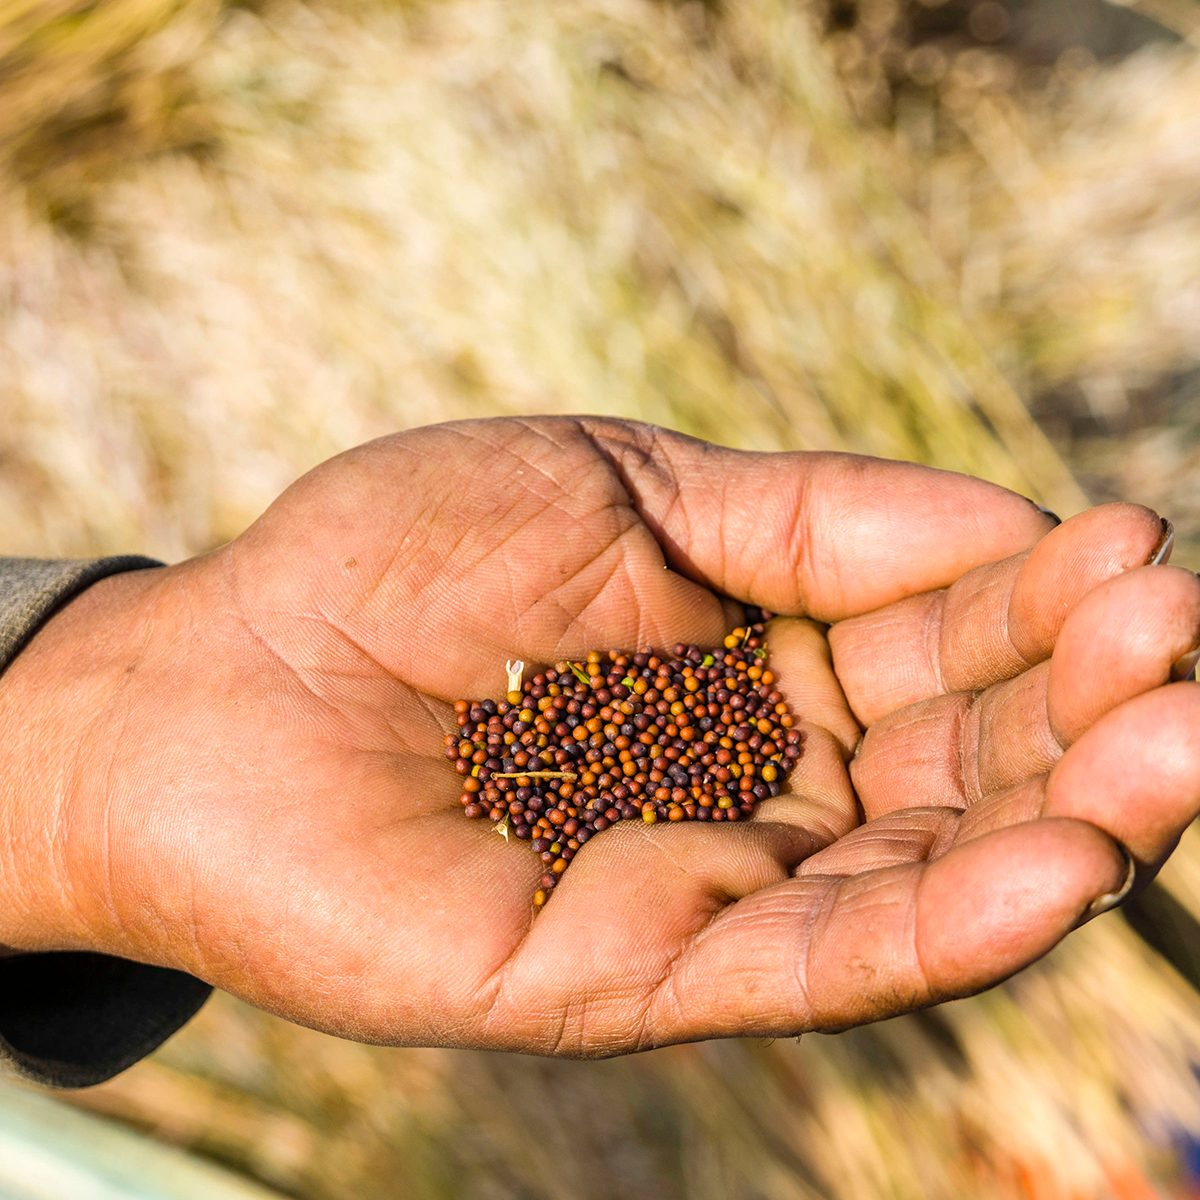 indian spices KOLKATA, WEST BENGAL, INDIA - 2017/02/06: Mustard seeds in the hand of a farmer in the rural surroundings of the suburb New Town. (Photo by Frank Bienewald/LightRocket via Getty Images)